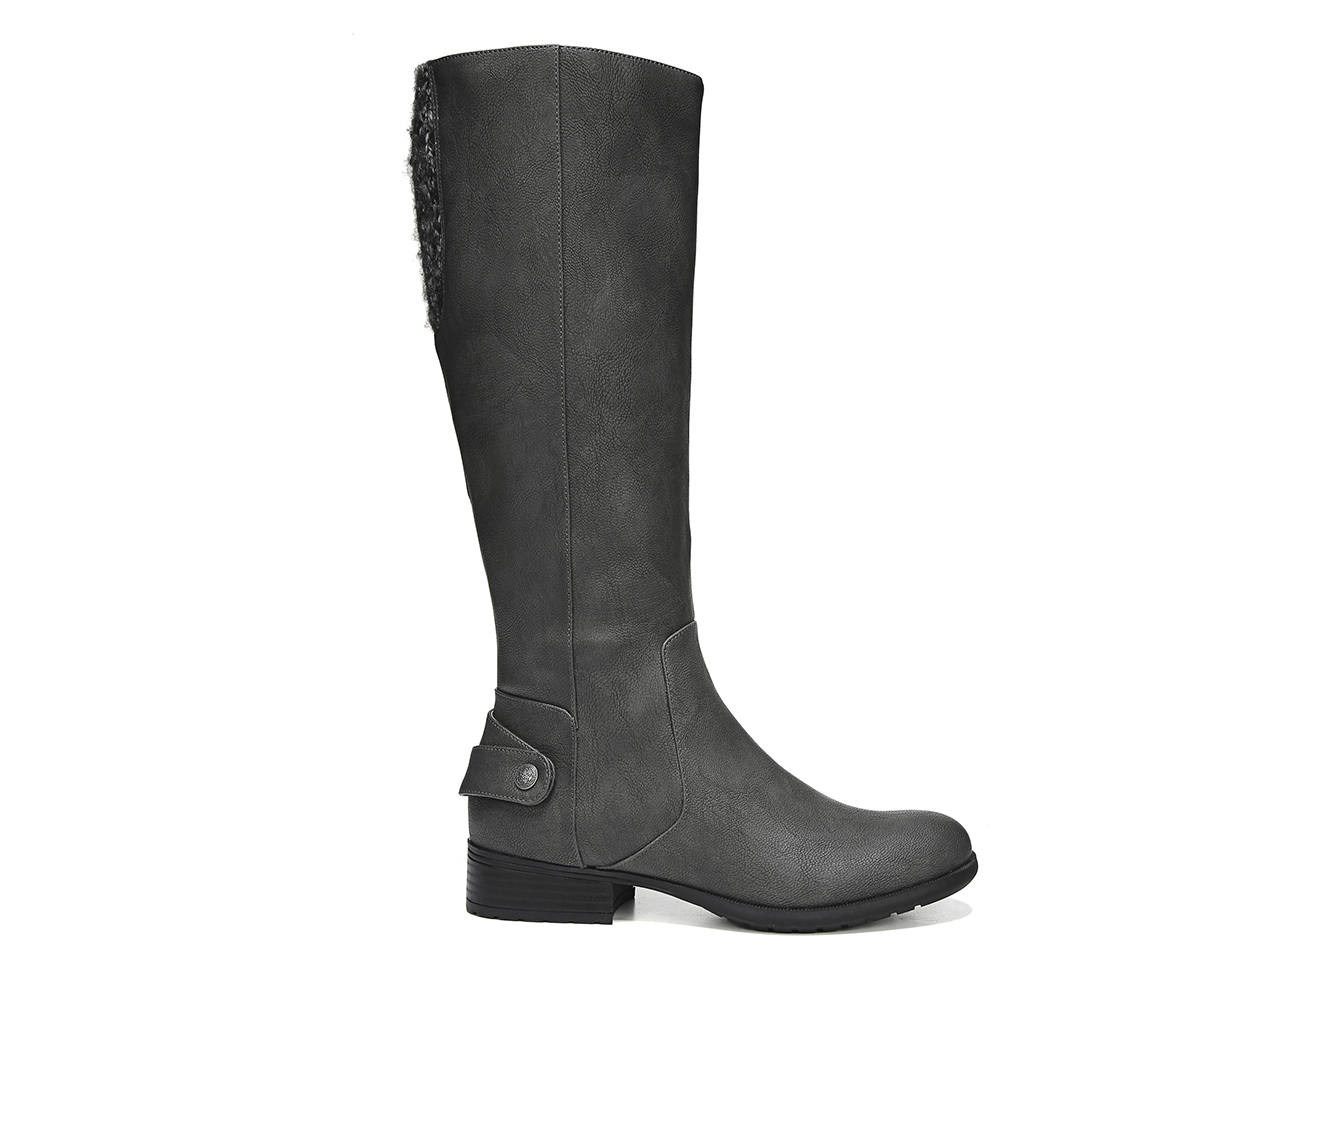 LifeStride X Amy Women's Boots (Gray - Faux Leather)